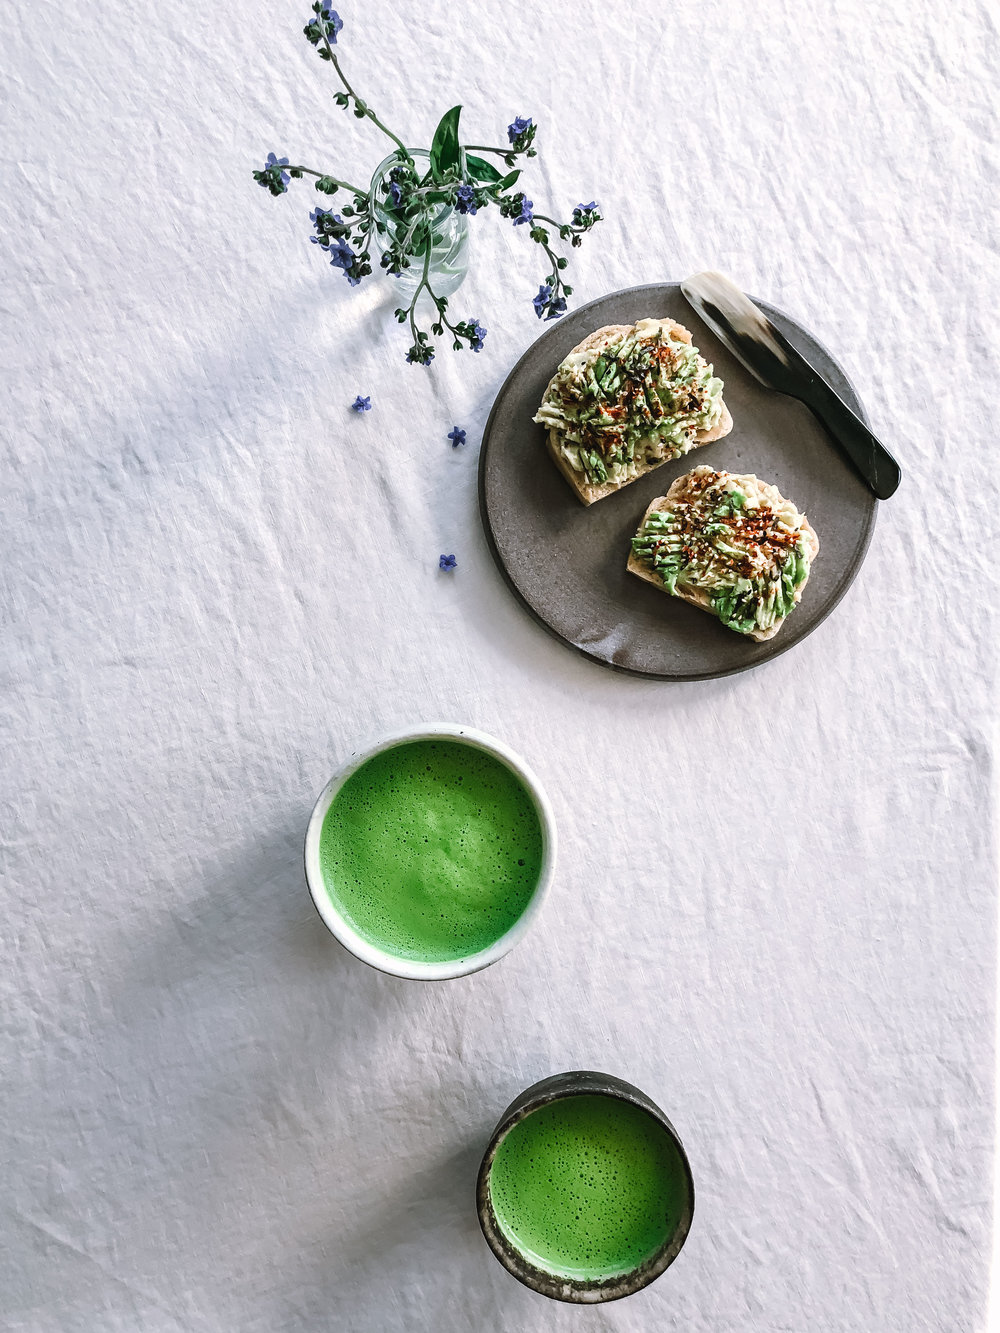 7 Matcha Secrets & Tips from a Student of Traditional Japanese Tea Ceremony